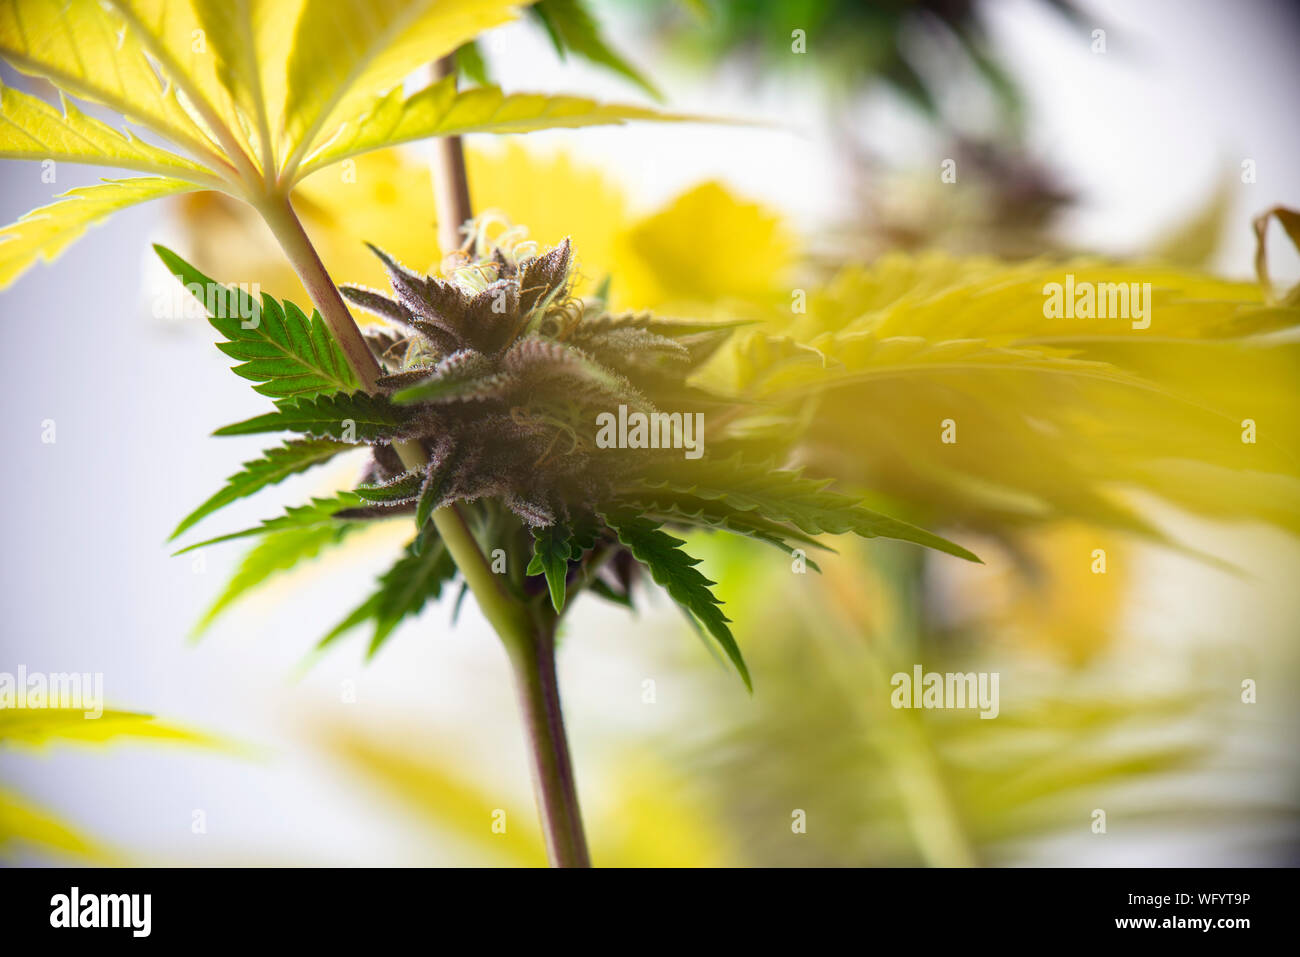 Detail of cannabis flower (purple queen hybrid strain) growing indoors - medical marijuana cultivationc oncept Stock Photo